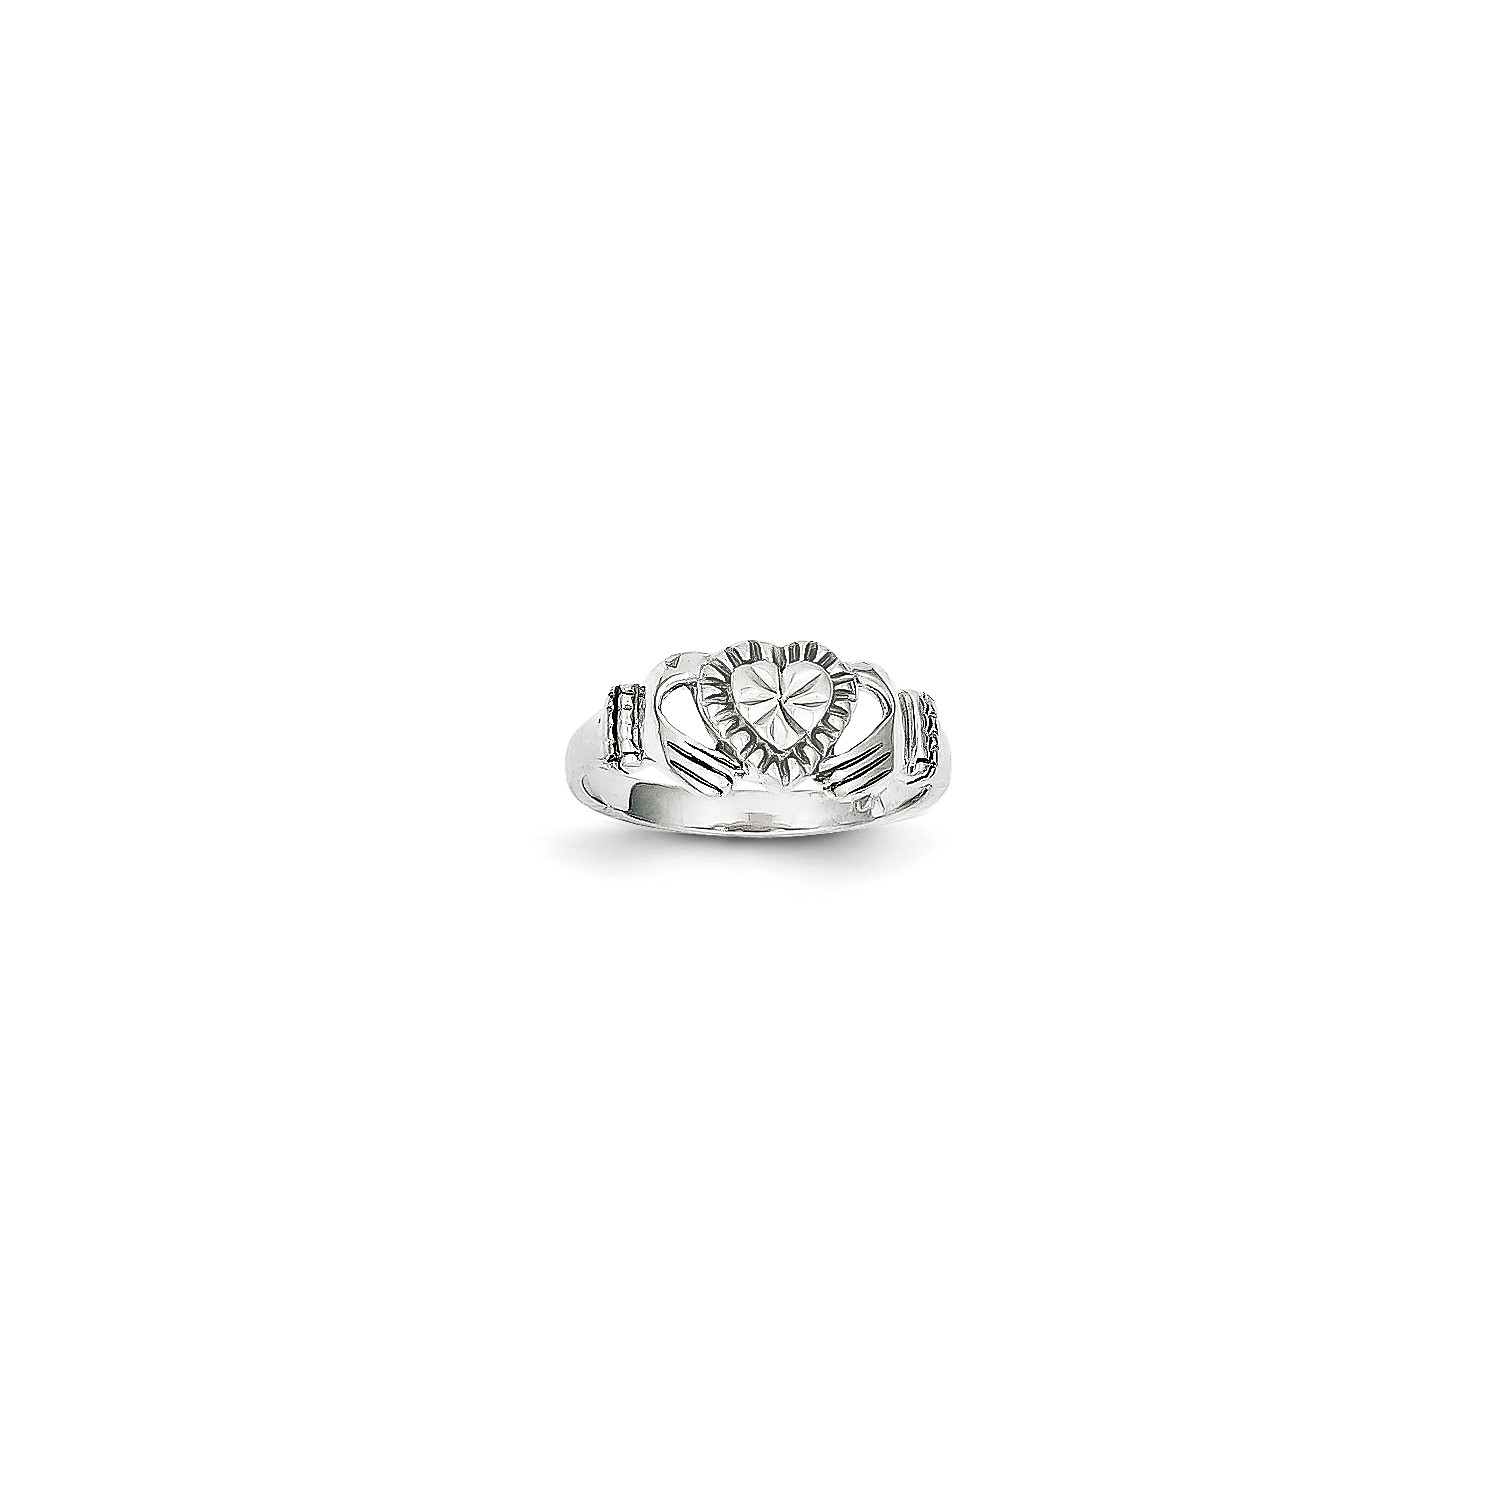 10k White gold Polished Claddagh Ring. Metal Wt-1.63g